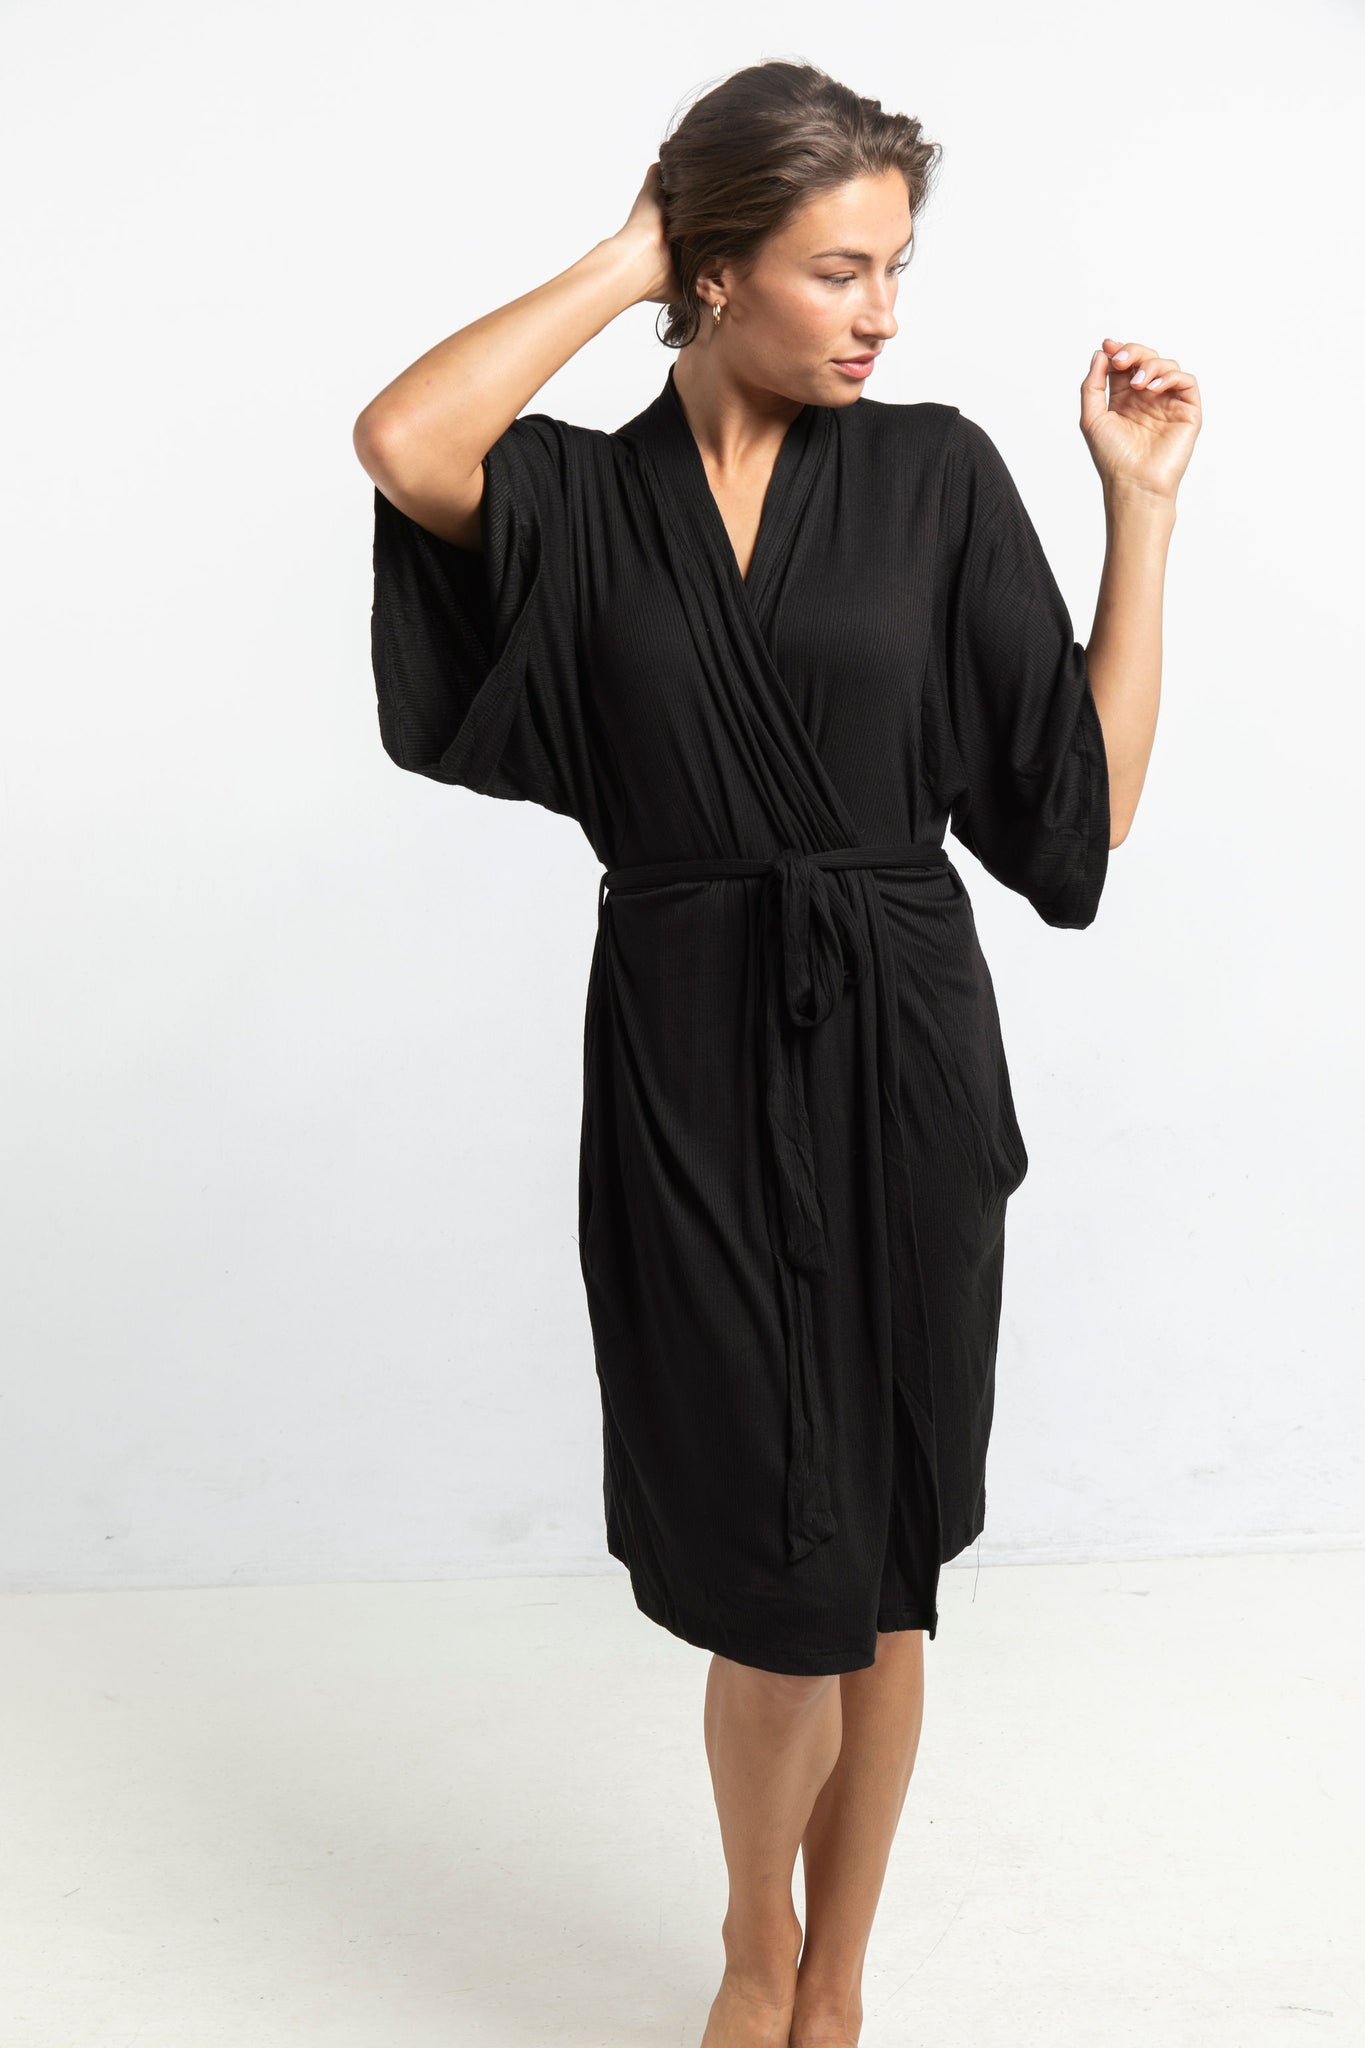 The Robe in Black